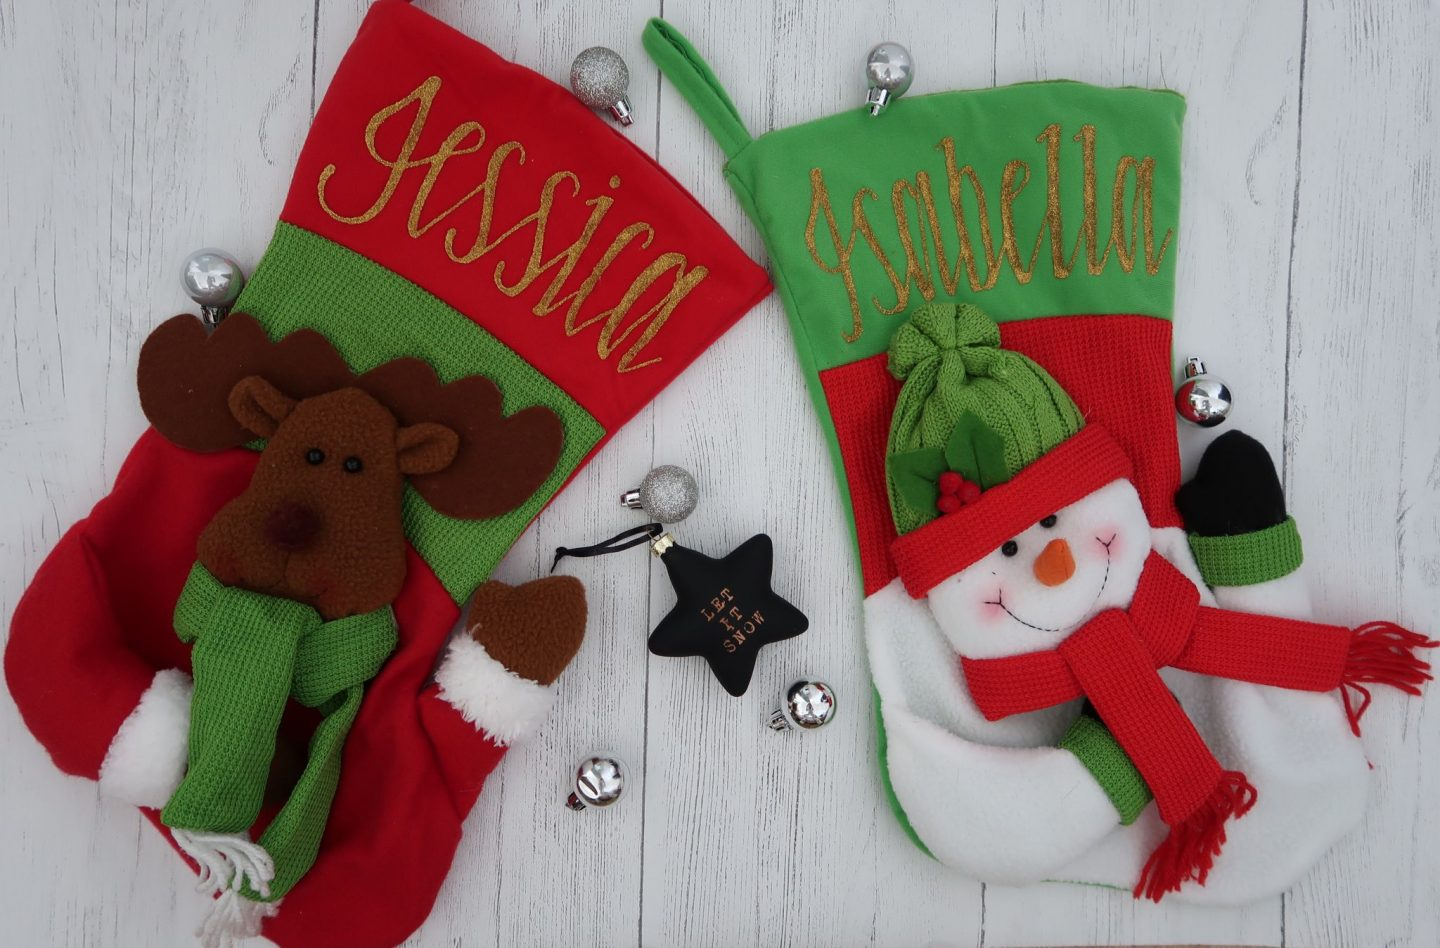 Getting festive with stockings from The Christmas Cart